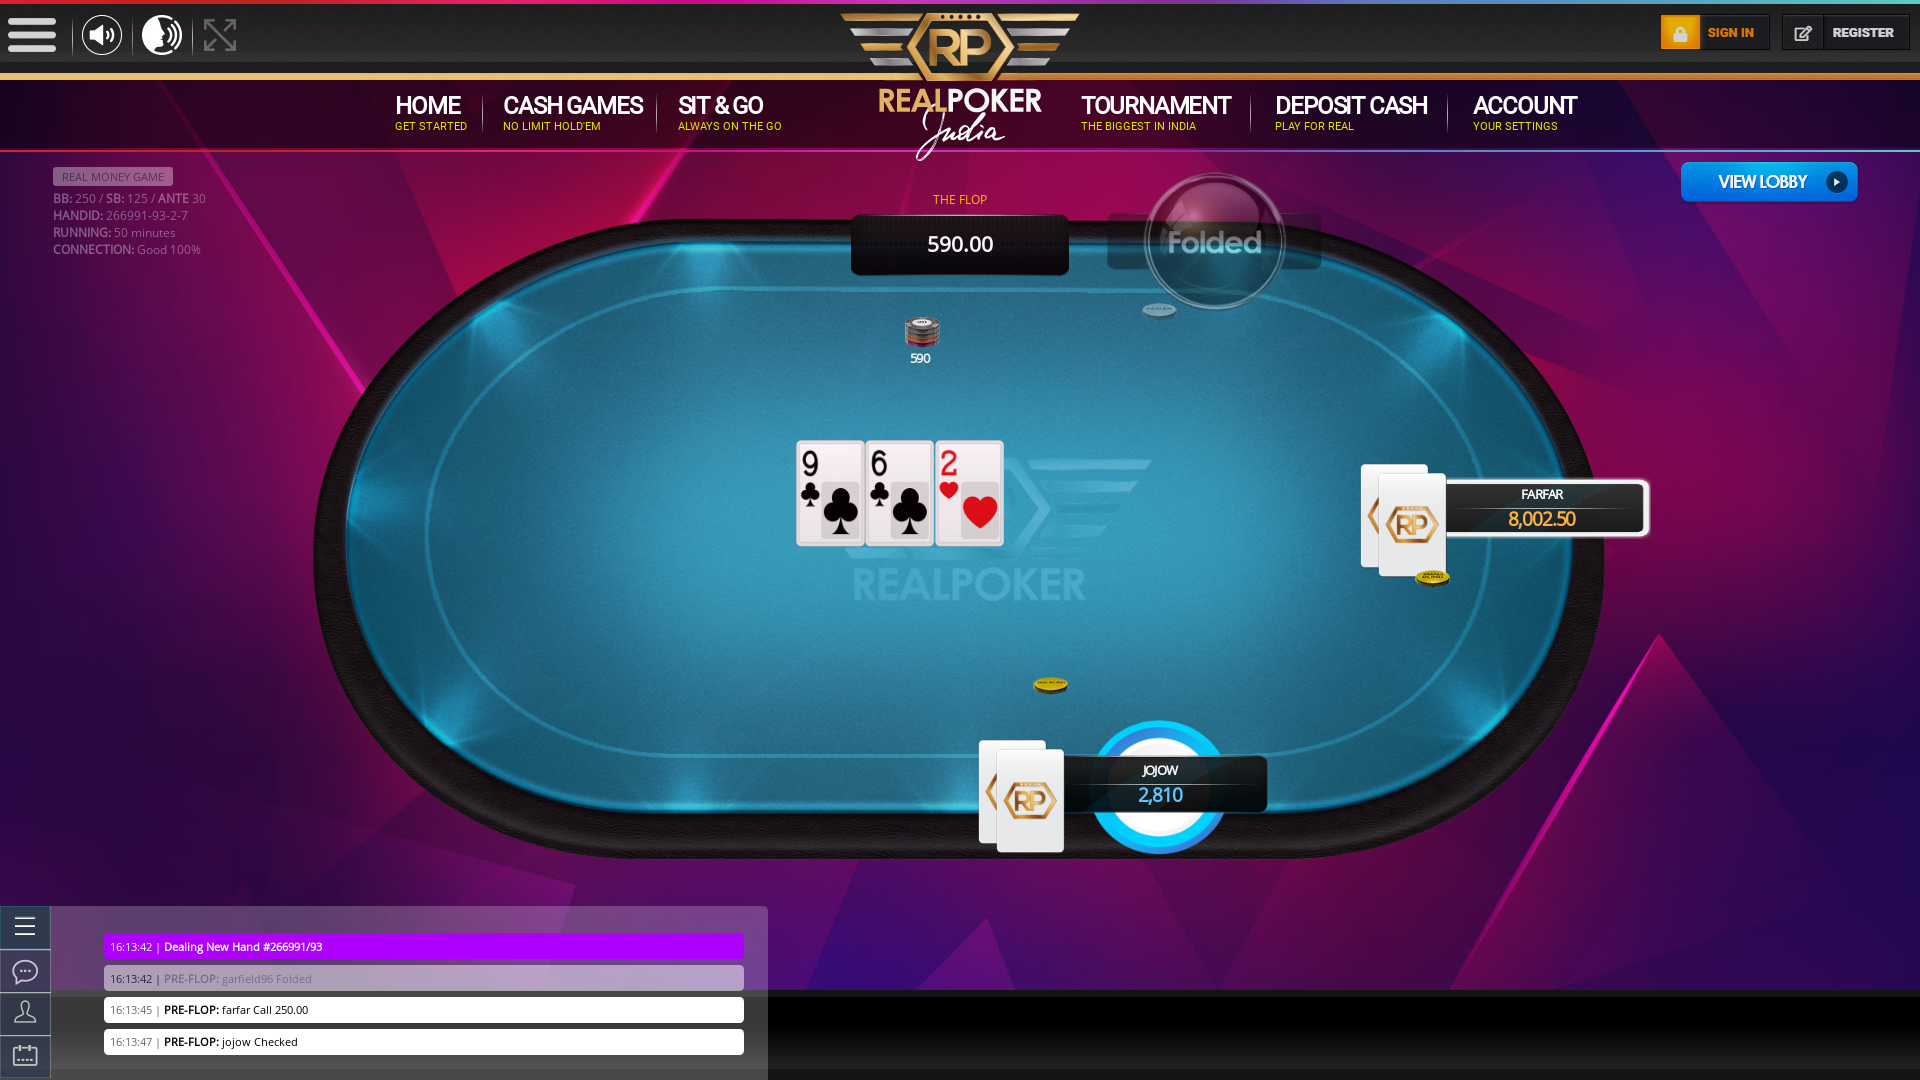 Indian poker on a 10 player table in the 12th minute